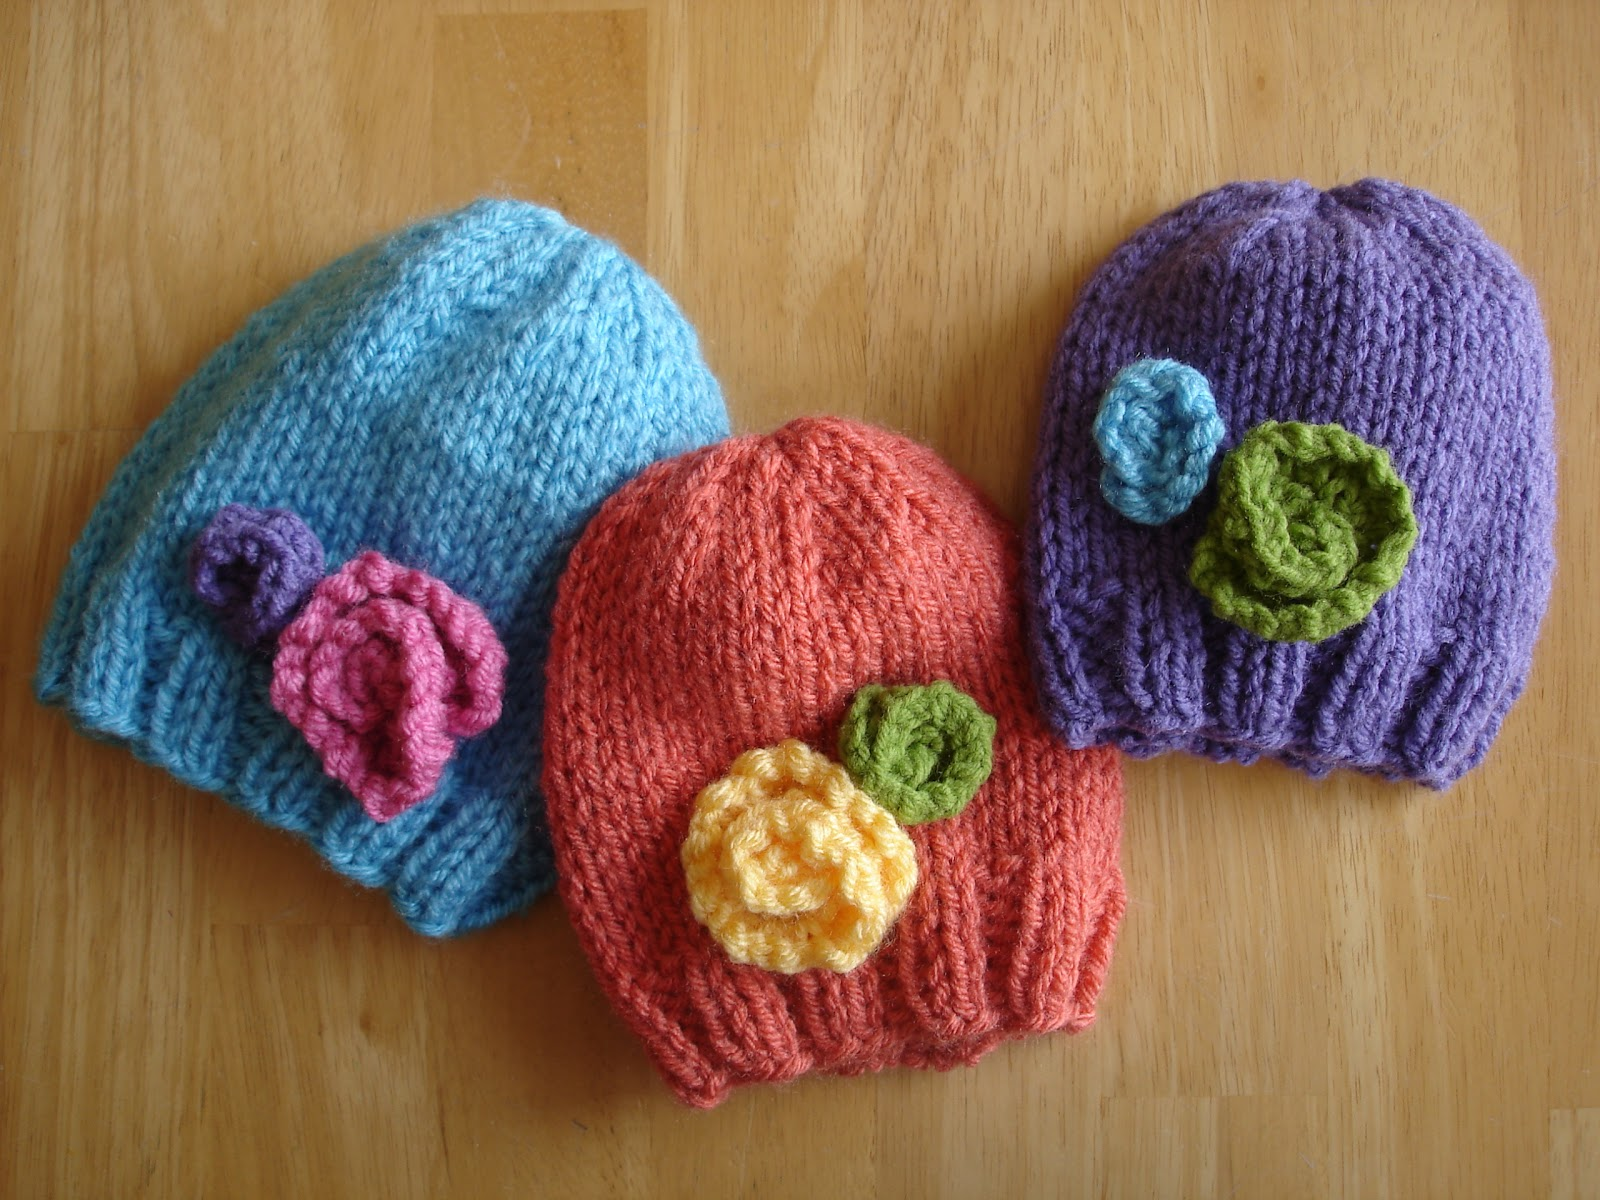 Christmas Star Knitting Pattern : Fiber Flux: Free Knitting Pattern! Baby In Bloom Hats